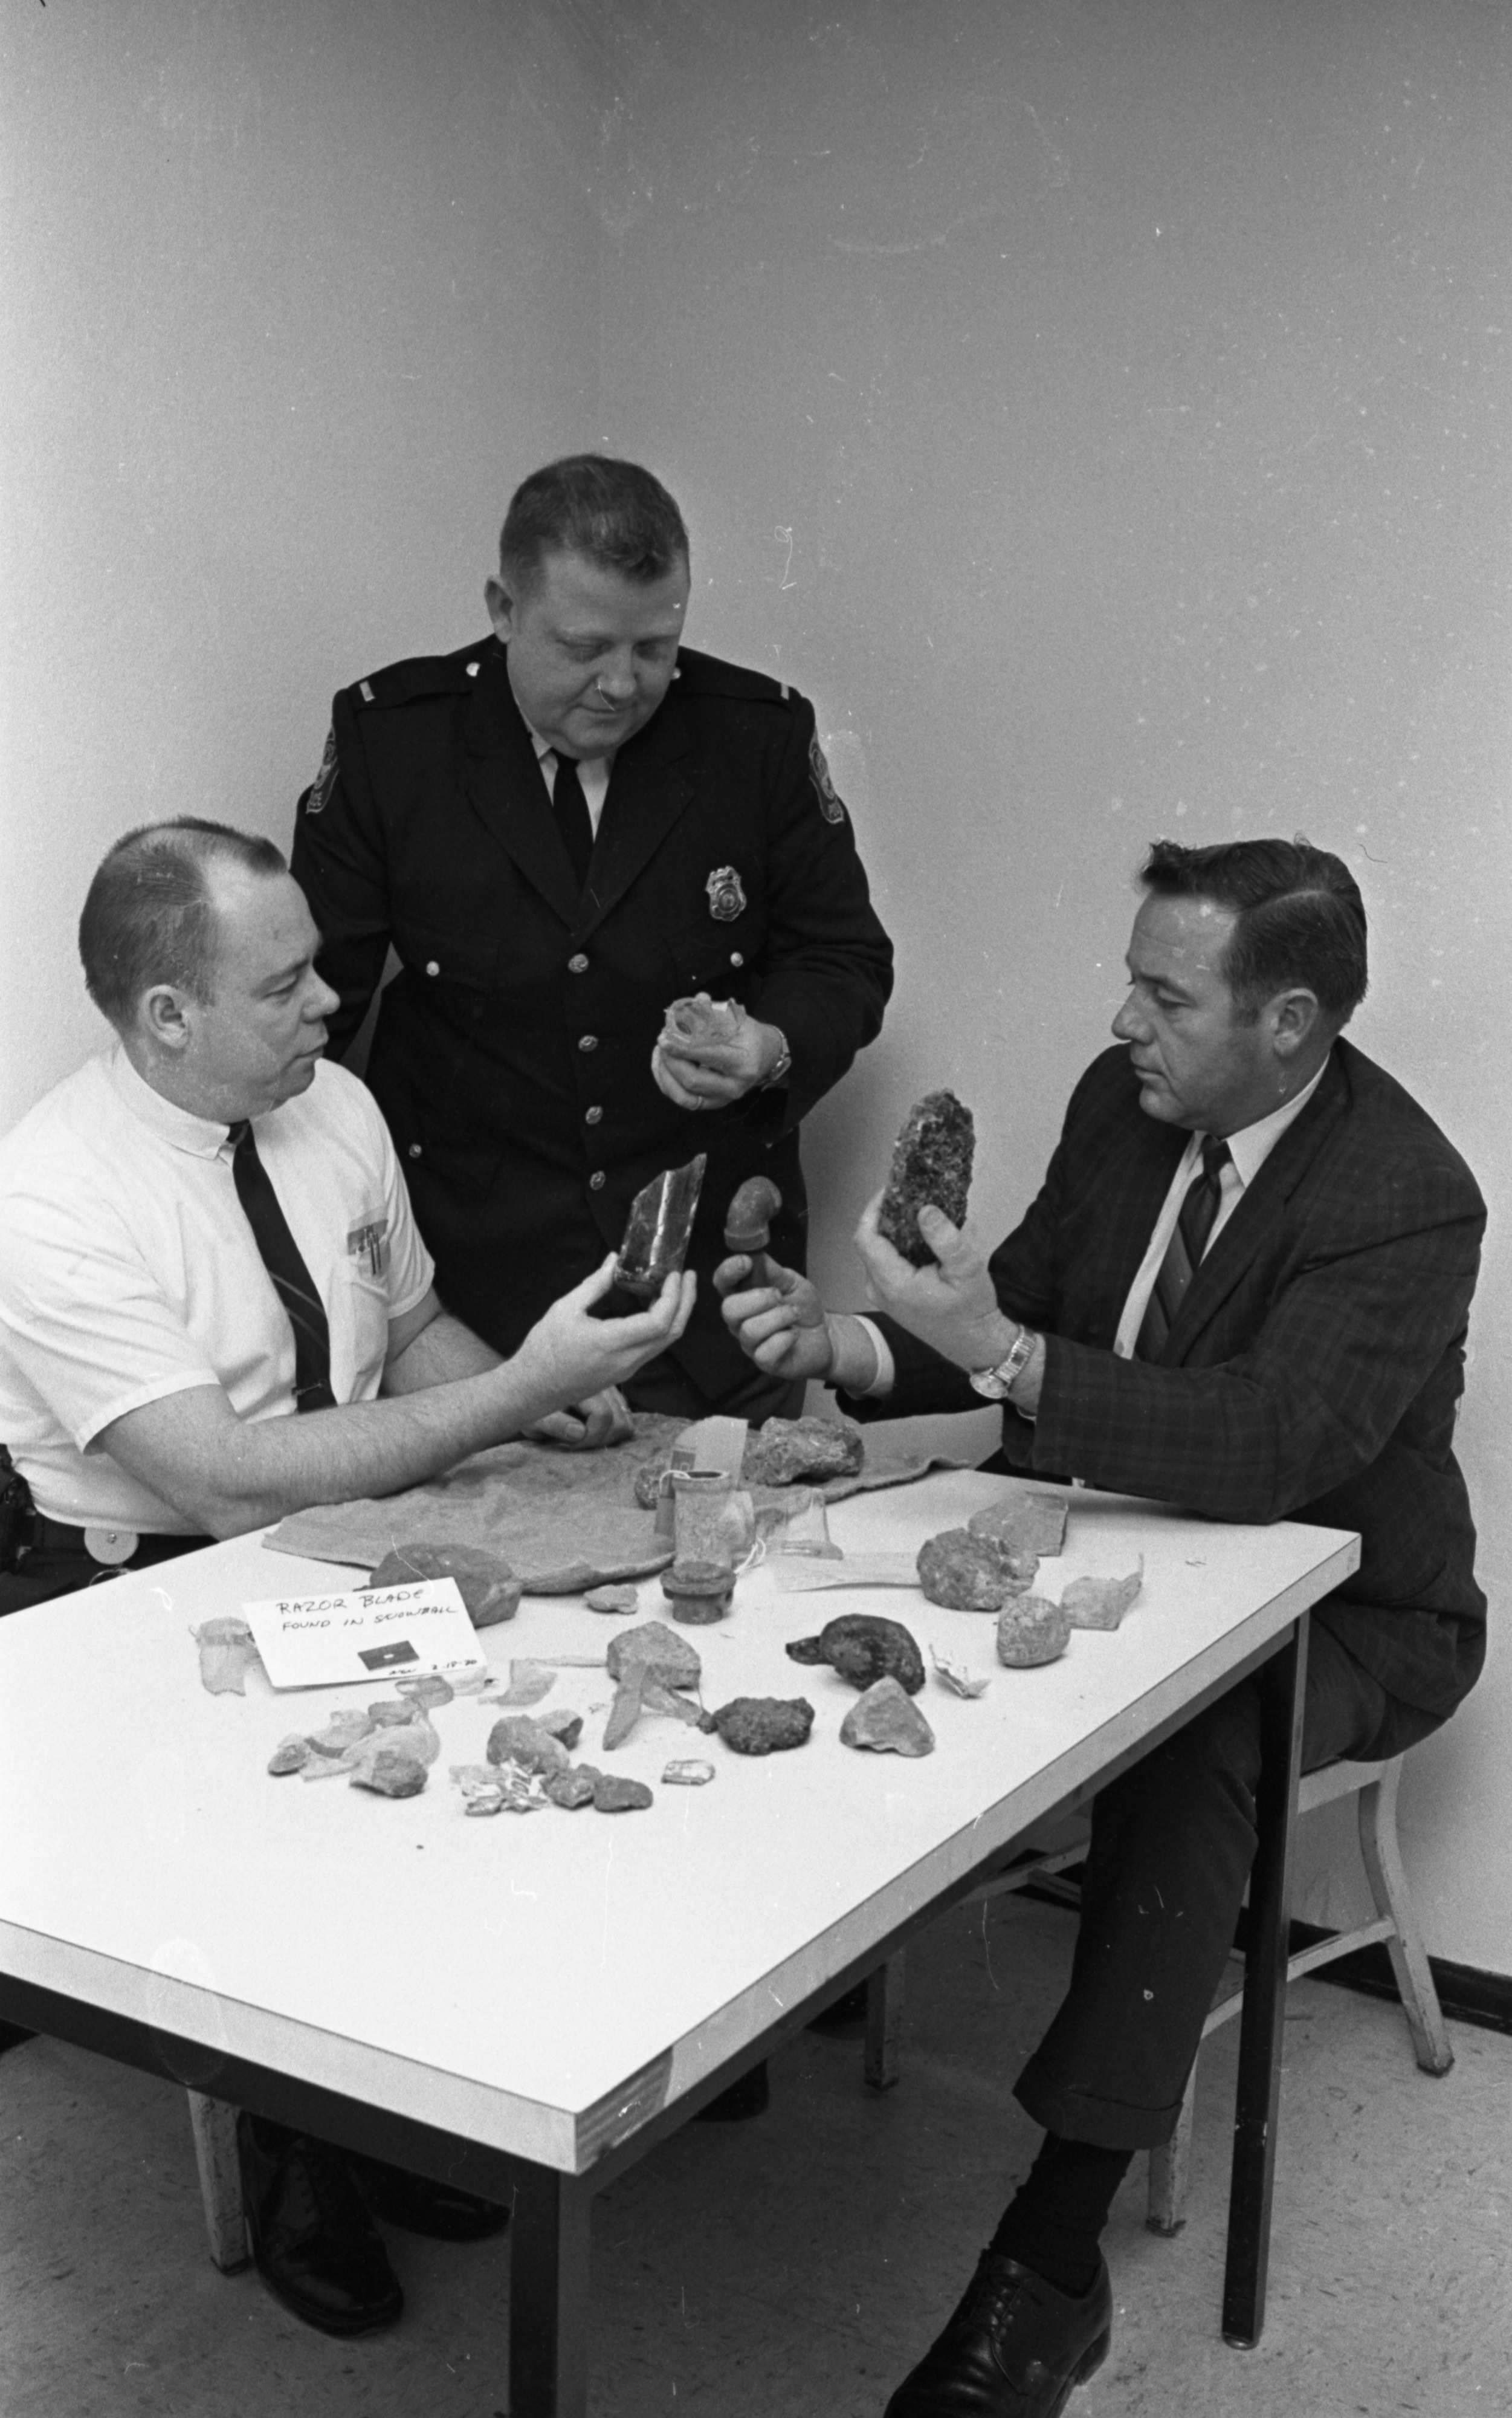 Ann Arbor Police Officers Examine Rocks Hidden In Snowballs, February 1970 image